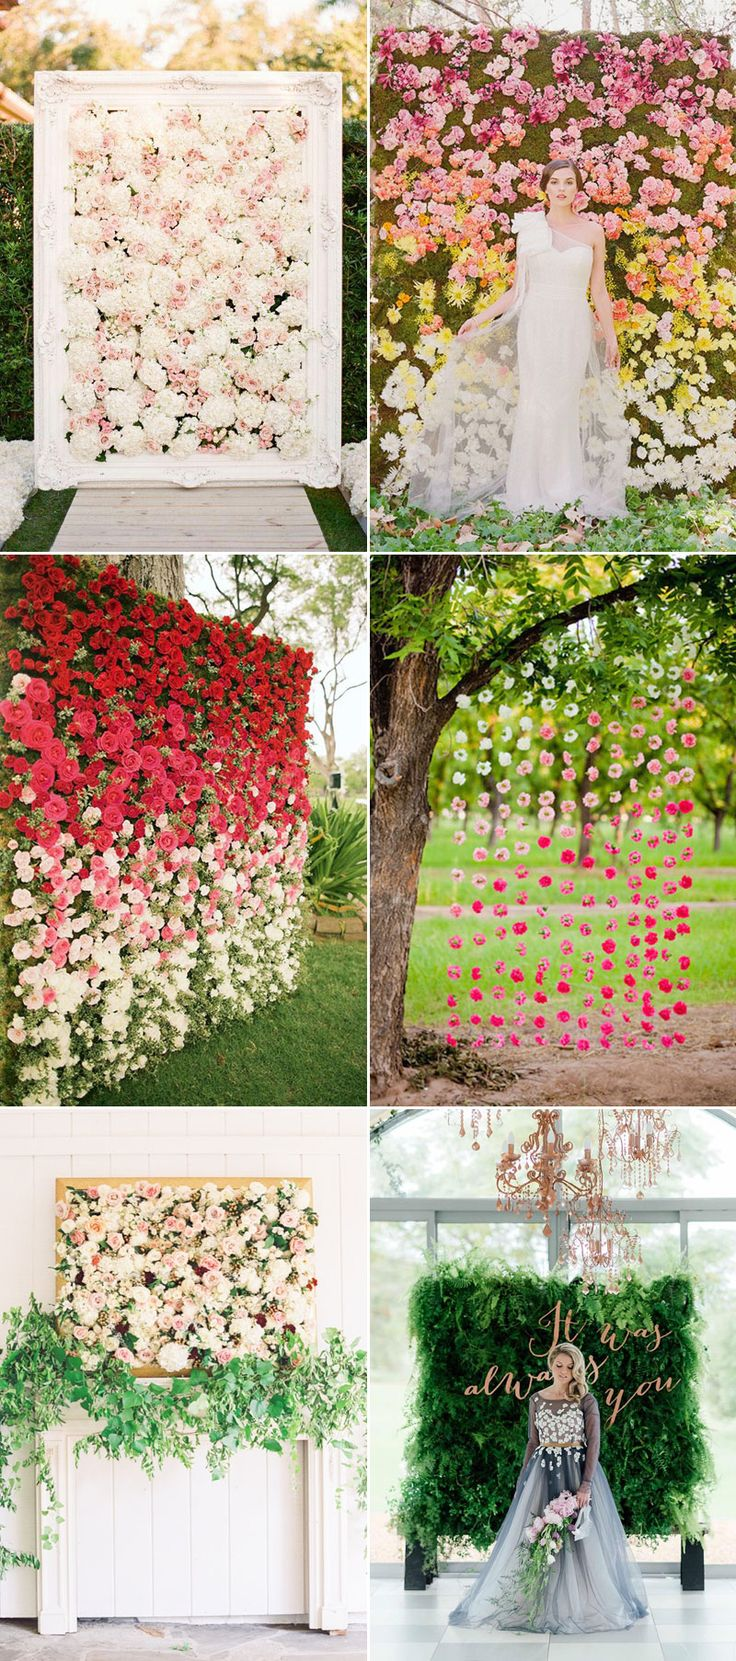 25 Best Ideas About Wedding Decorations On Pinterest Diy Wedding Decorations Wedding